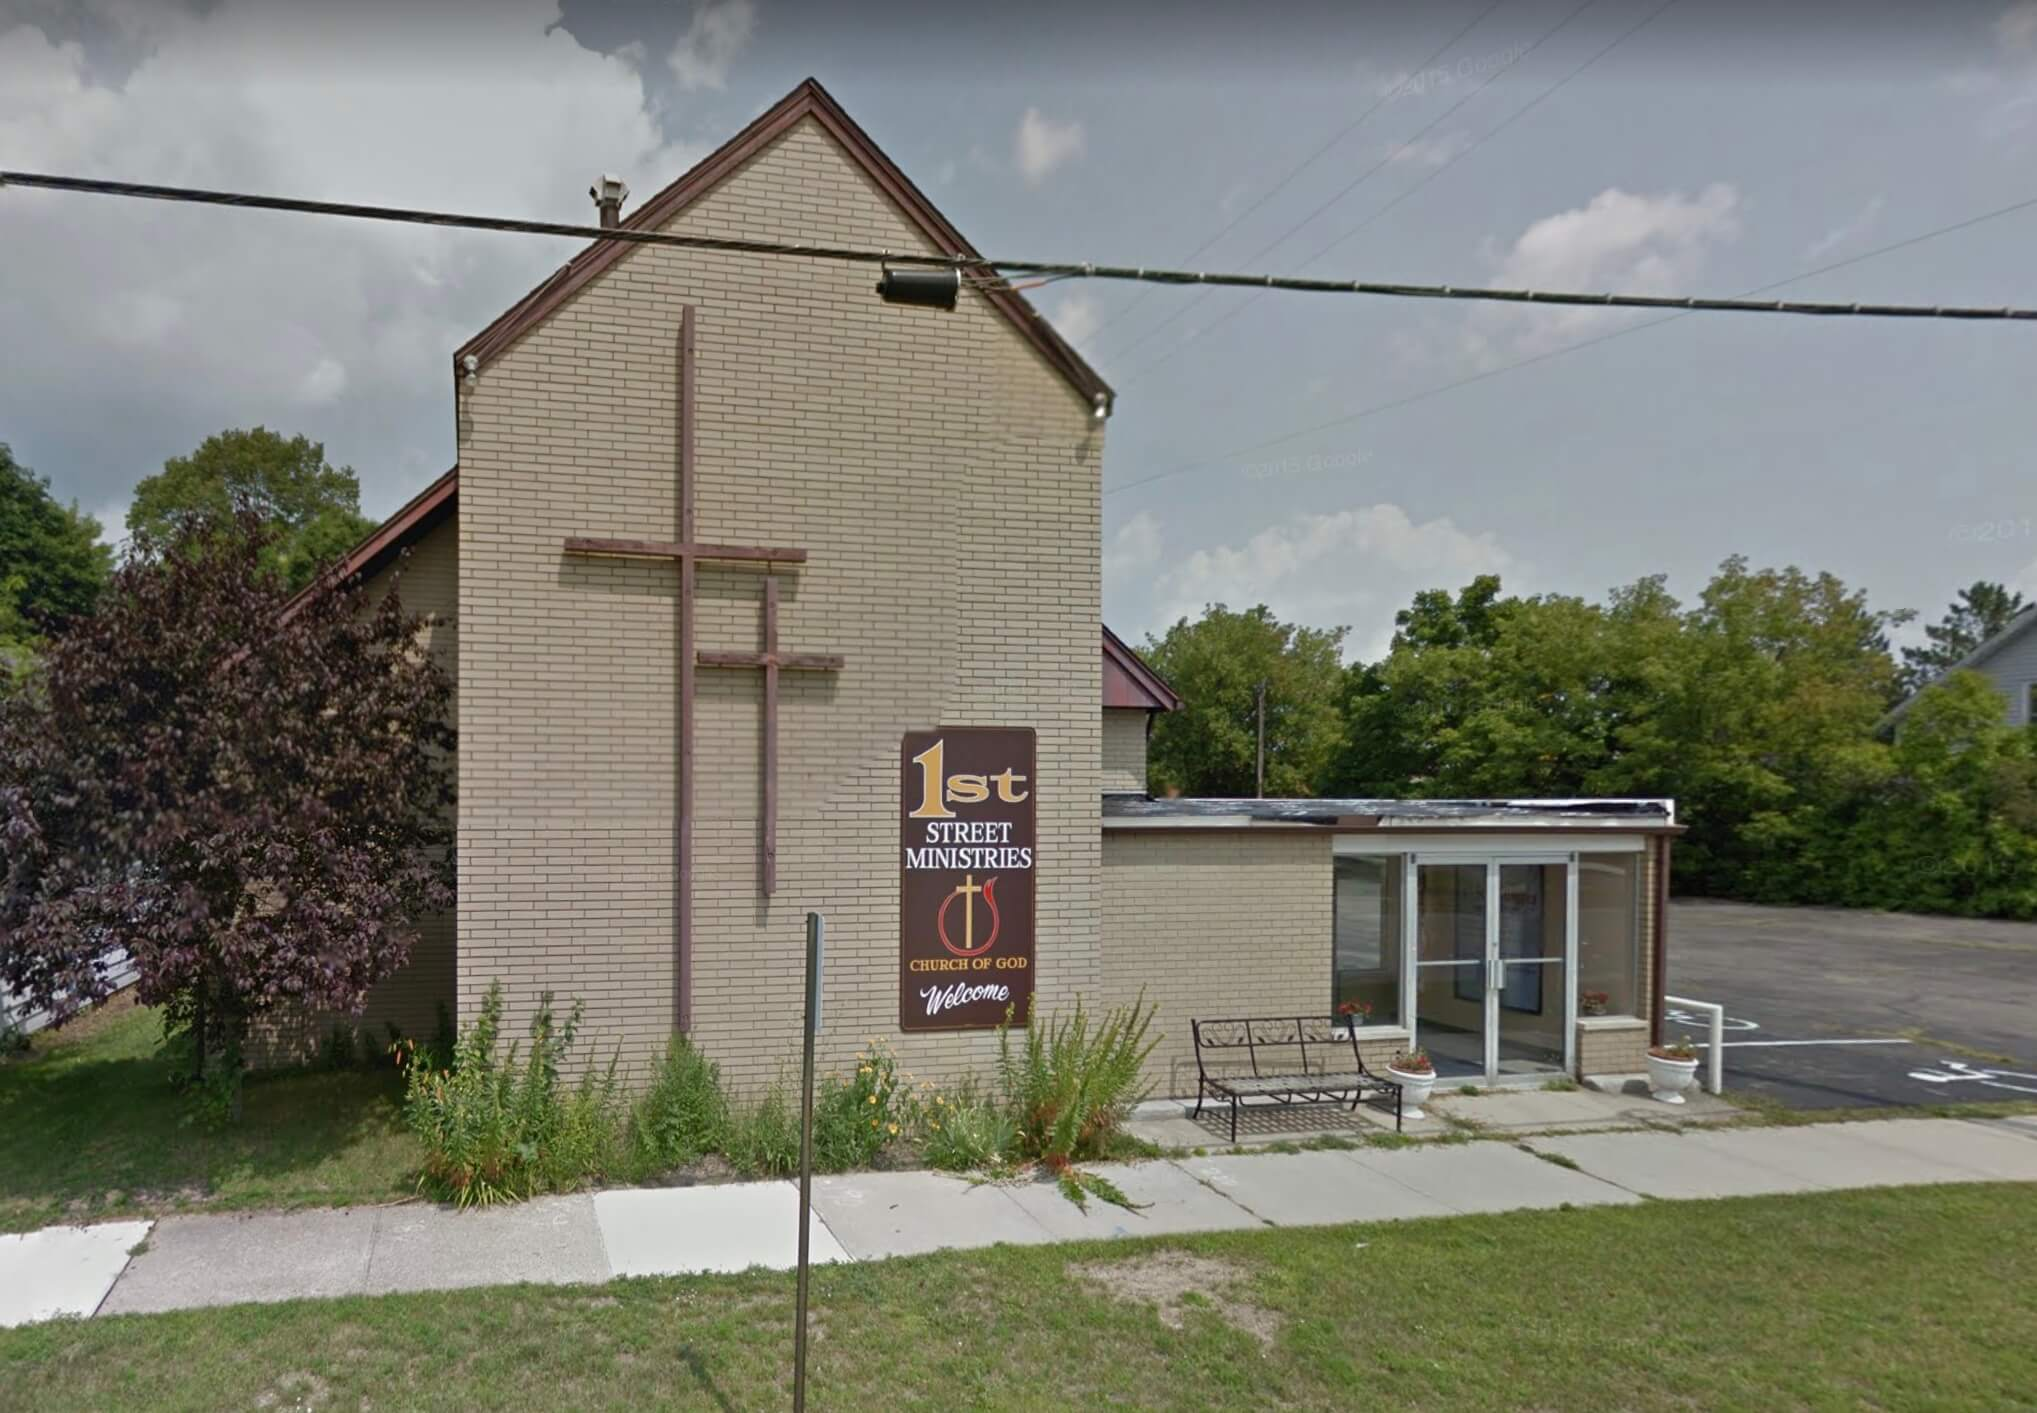 First Street Ministries Church Of God - 100 W 1st St, Gladwin, Michigan 48624 | Real Estate Professional Services